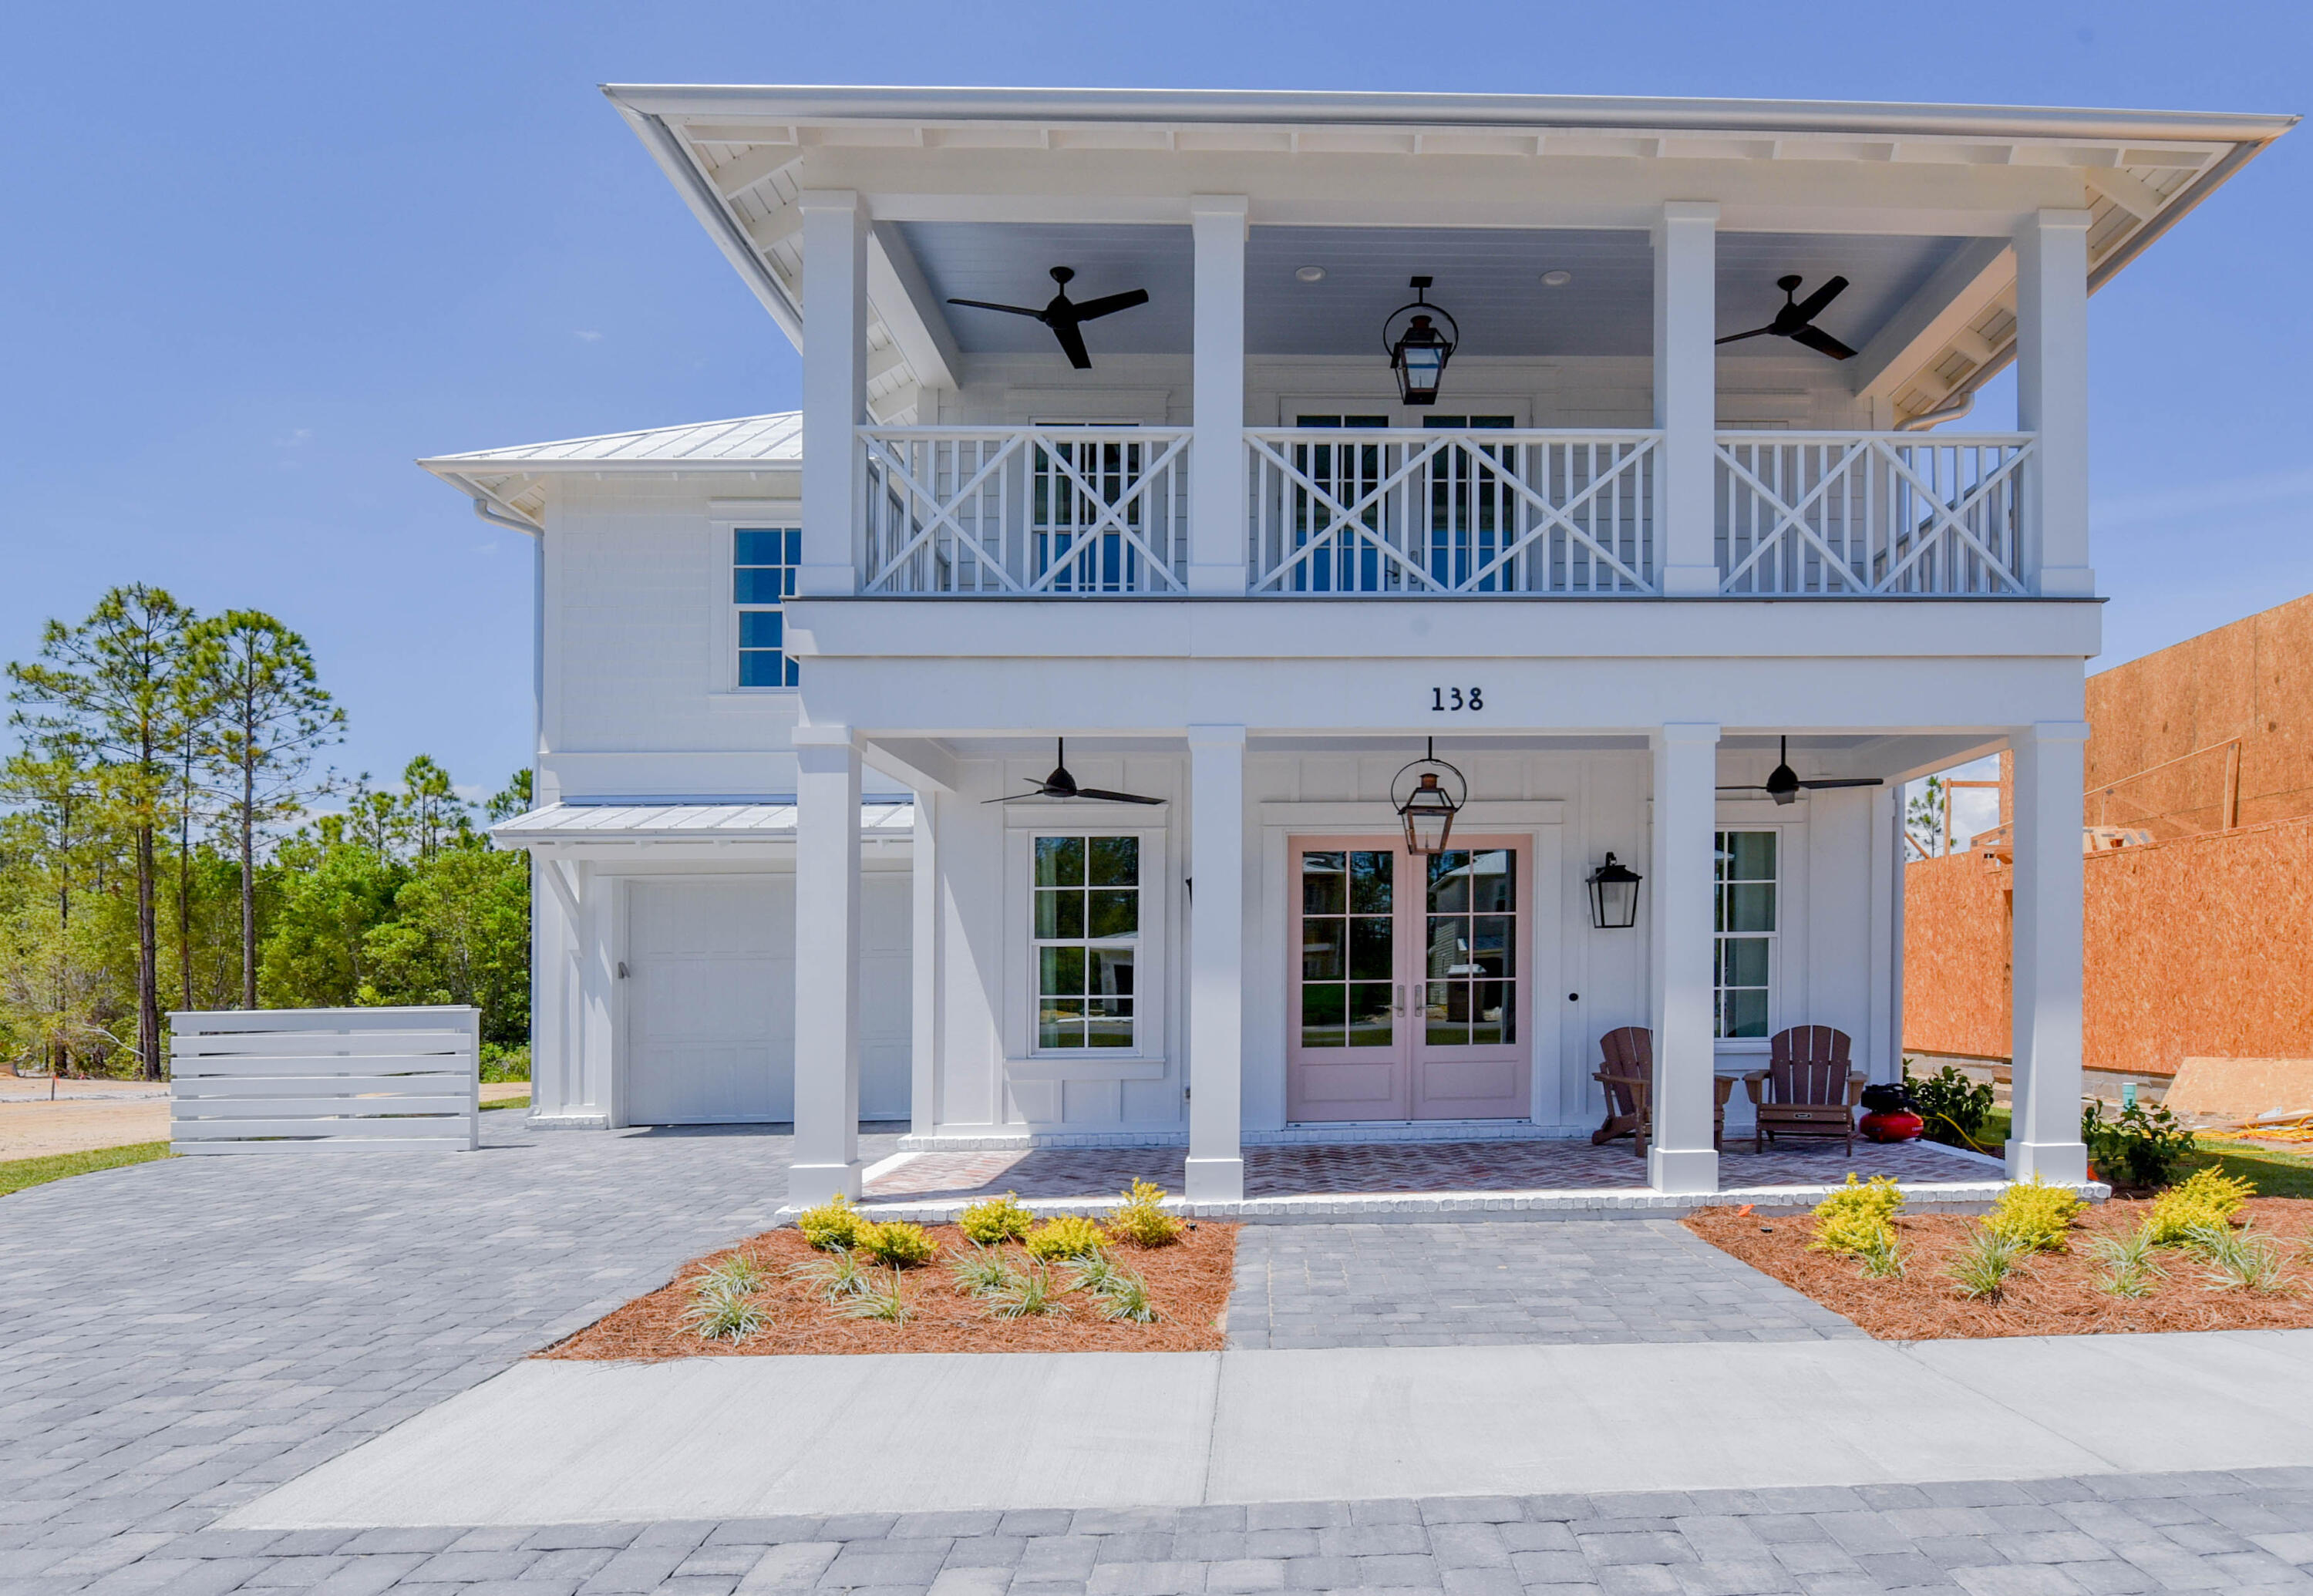 BRAND NEW CONSTRUCTION! Short walk, bike ride, or drive to multiple beach access points. The Cottage Grove Community delivers coastal lifestyle with peace and privacy.  Nestled 1 mile off 30a and 1 mile from Hwy 98.  This gated community DOES NOT ALLOW short term rentals!  The exceptional open floor plan provides ample space to entertain and relax.  Do you desire quality?  This home has just that: 2X6 Construction, KitchenAid appliances, brick and fiber cement siding, quartz countertops, engineered hardwoods throughout, cabinets have soft close drawer and doors as well as go to the ceiling, crown molding, large bar with beverage refrigerator, 10' ceilings, 8' doors, and so much more. Screened in back patio wired for your TV.HOA maintains your yard. Community pool, cabana, BBQ grill